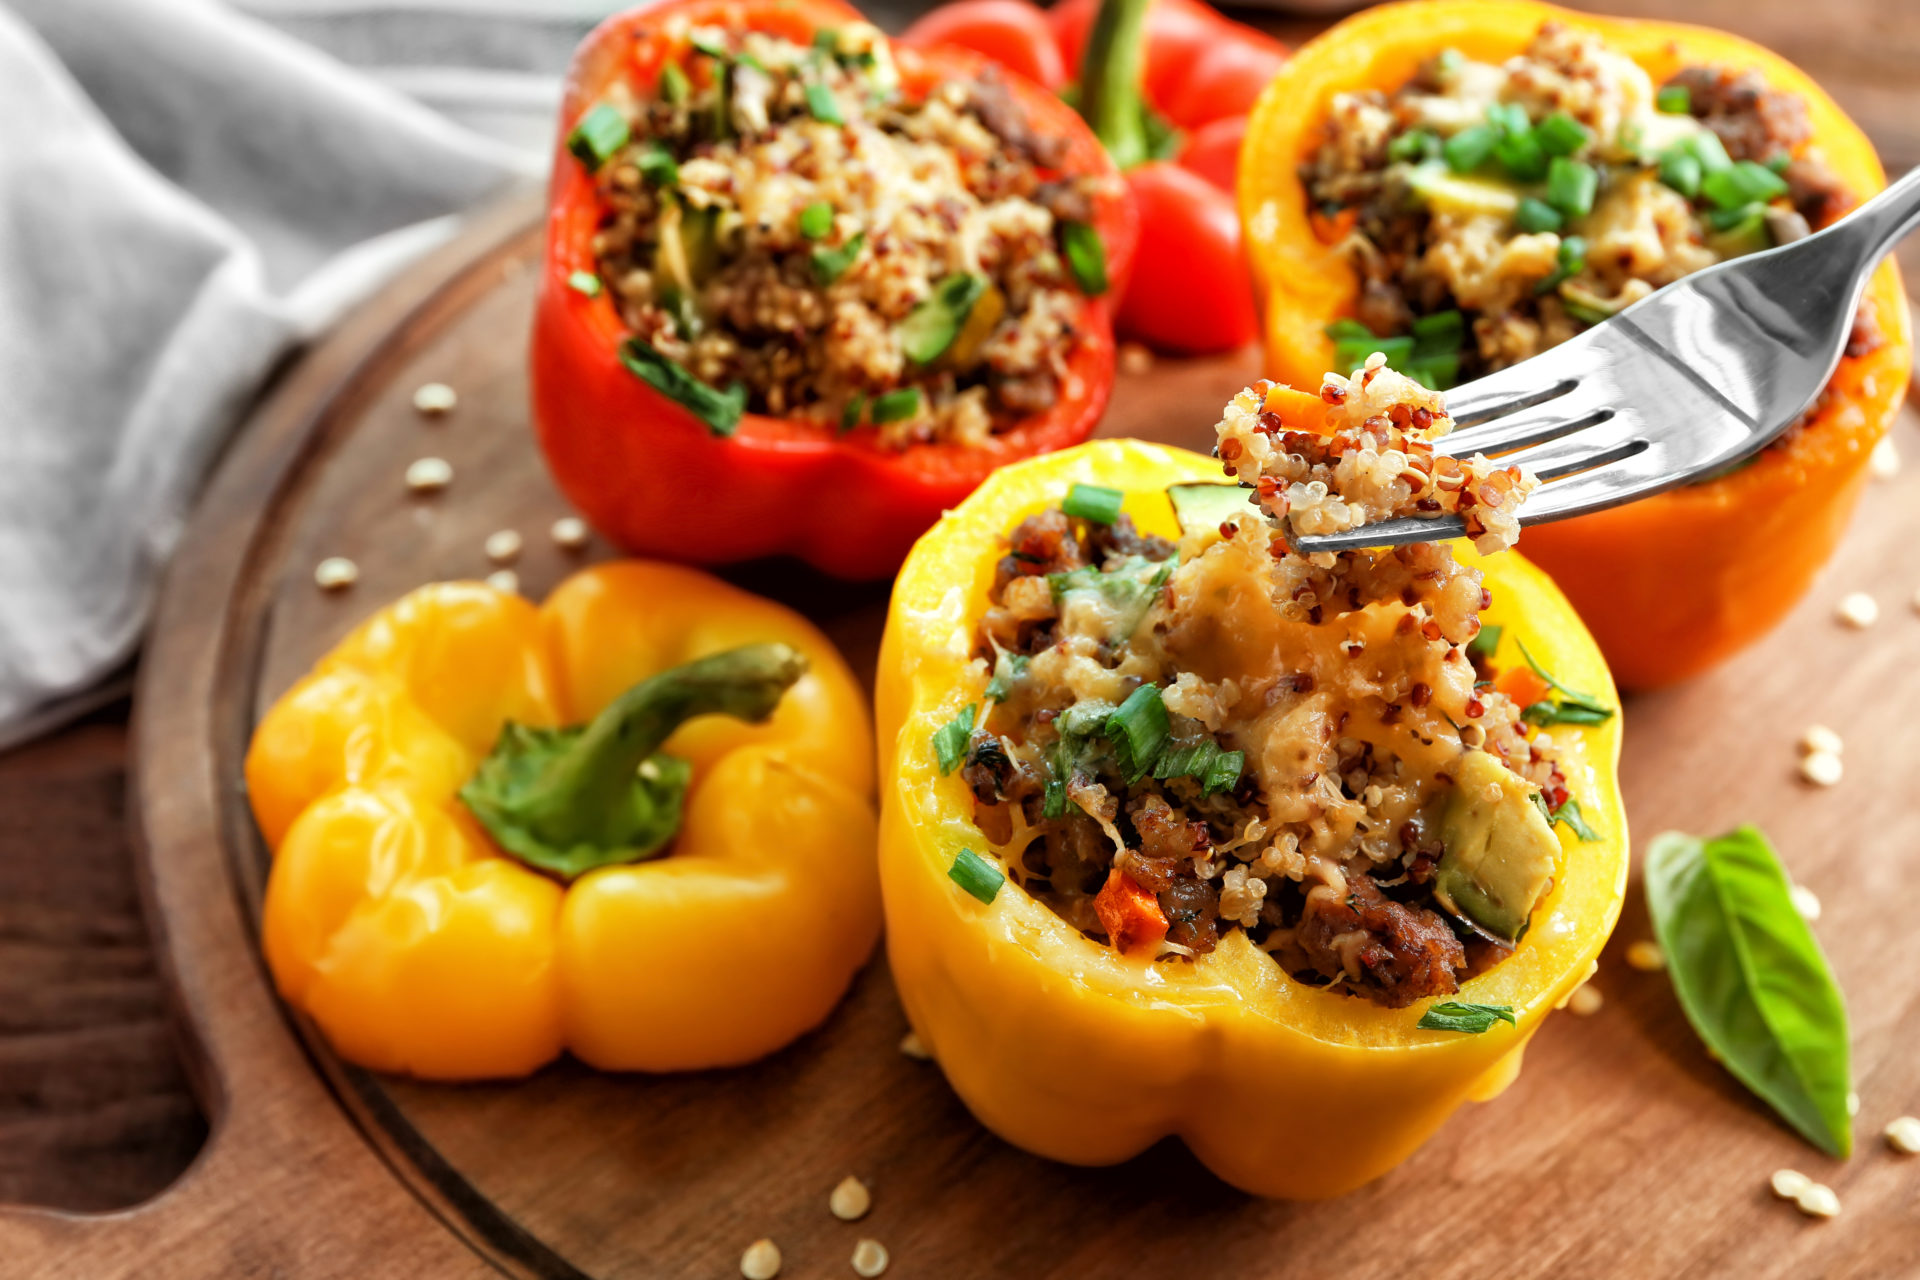 Stuffed bell peppers on wooden board